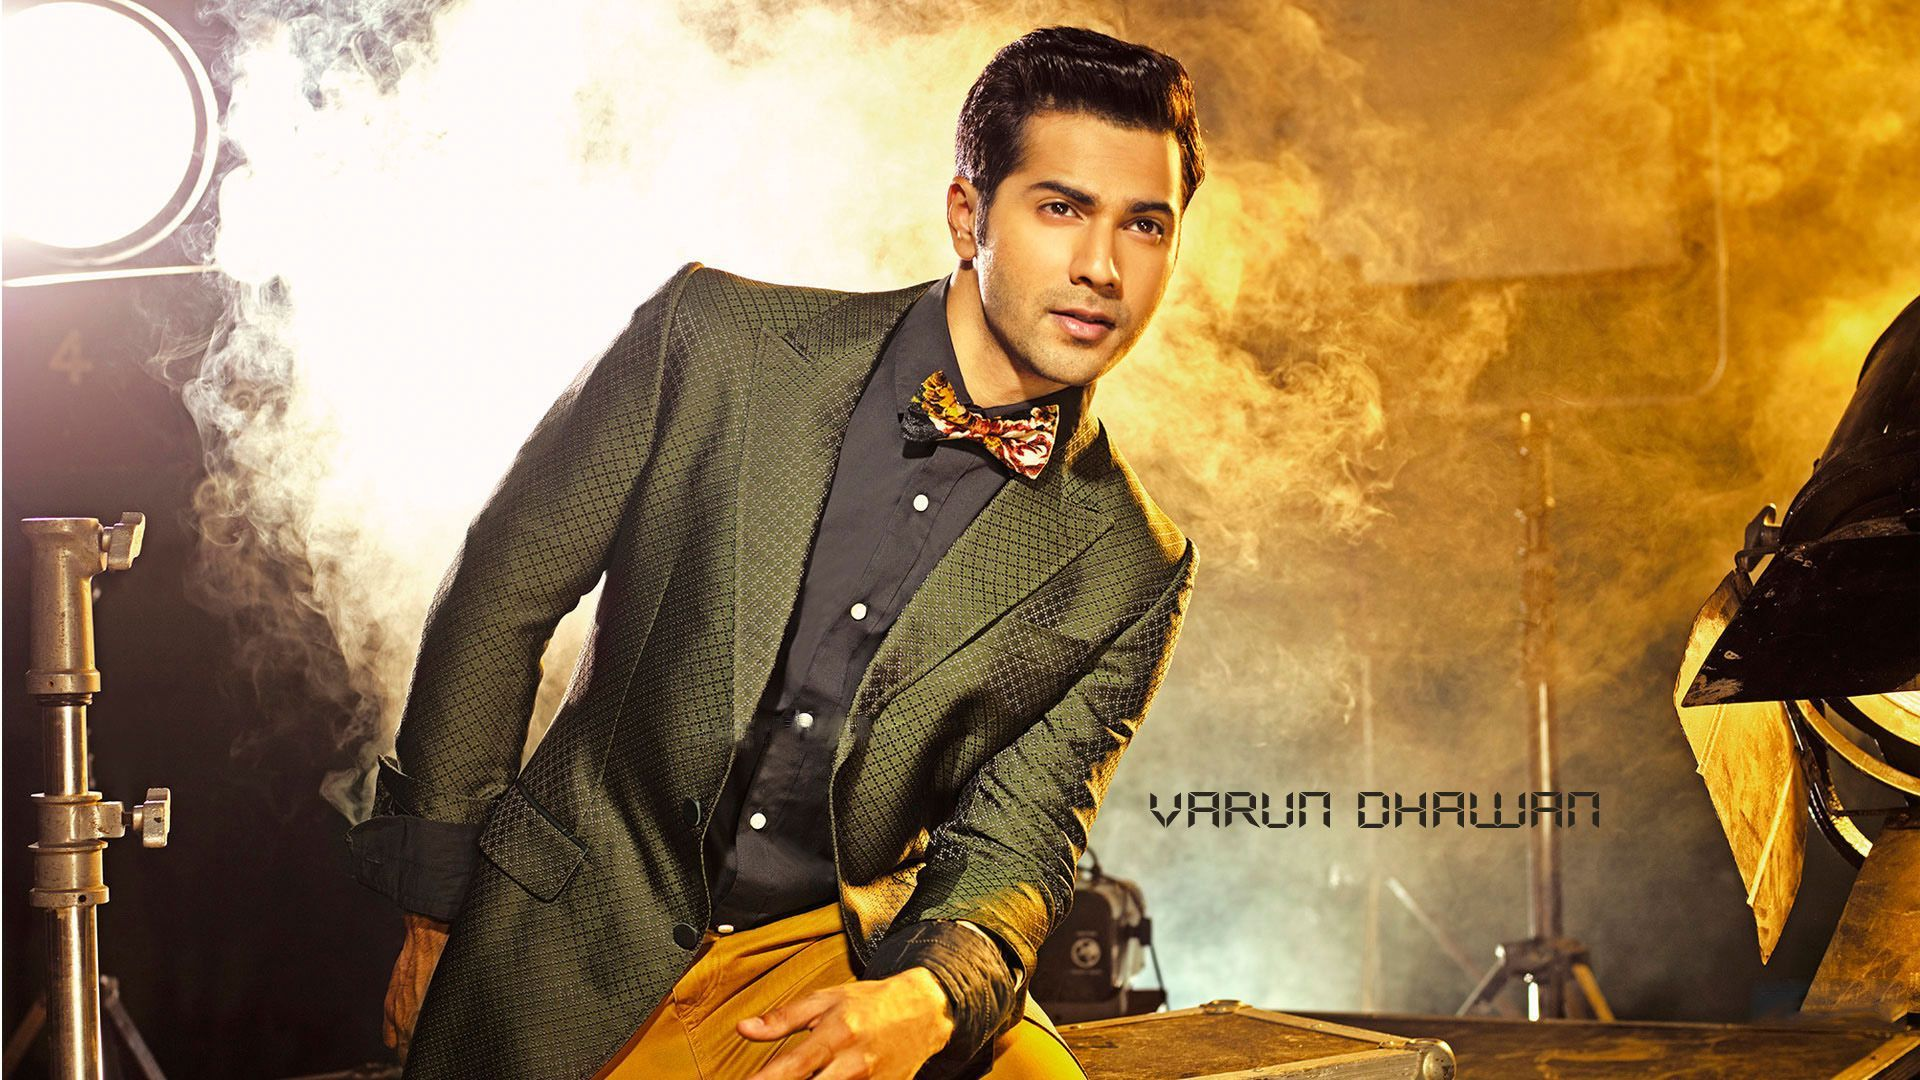 Bollywood Actors Walpaper In 2080p: Varun Dhawan, Bollywood, Actor, Indian Actor, HD, Dashing